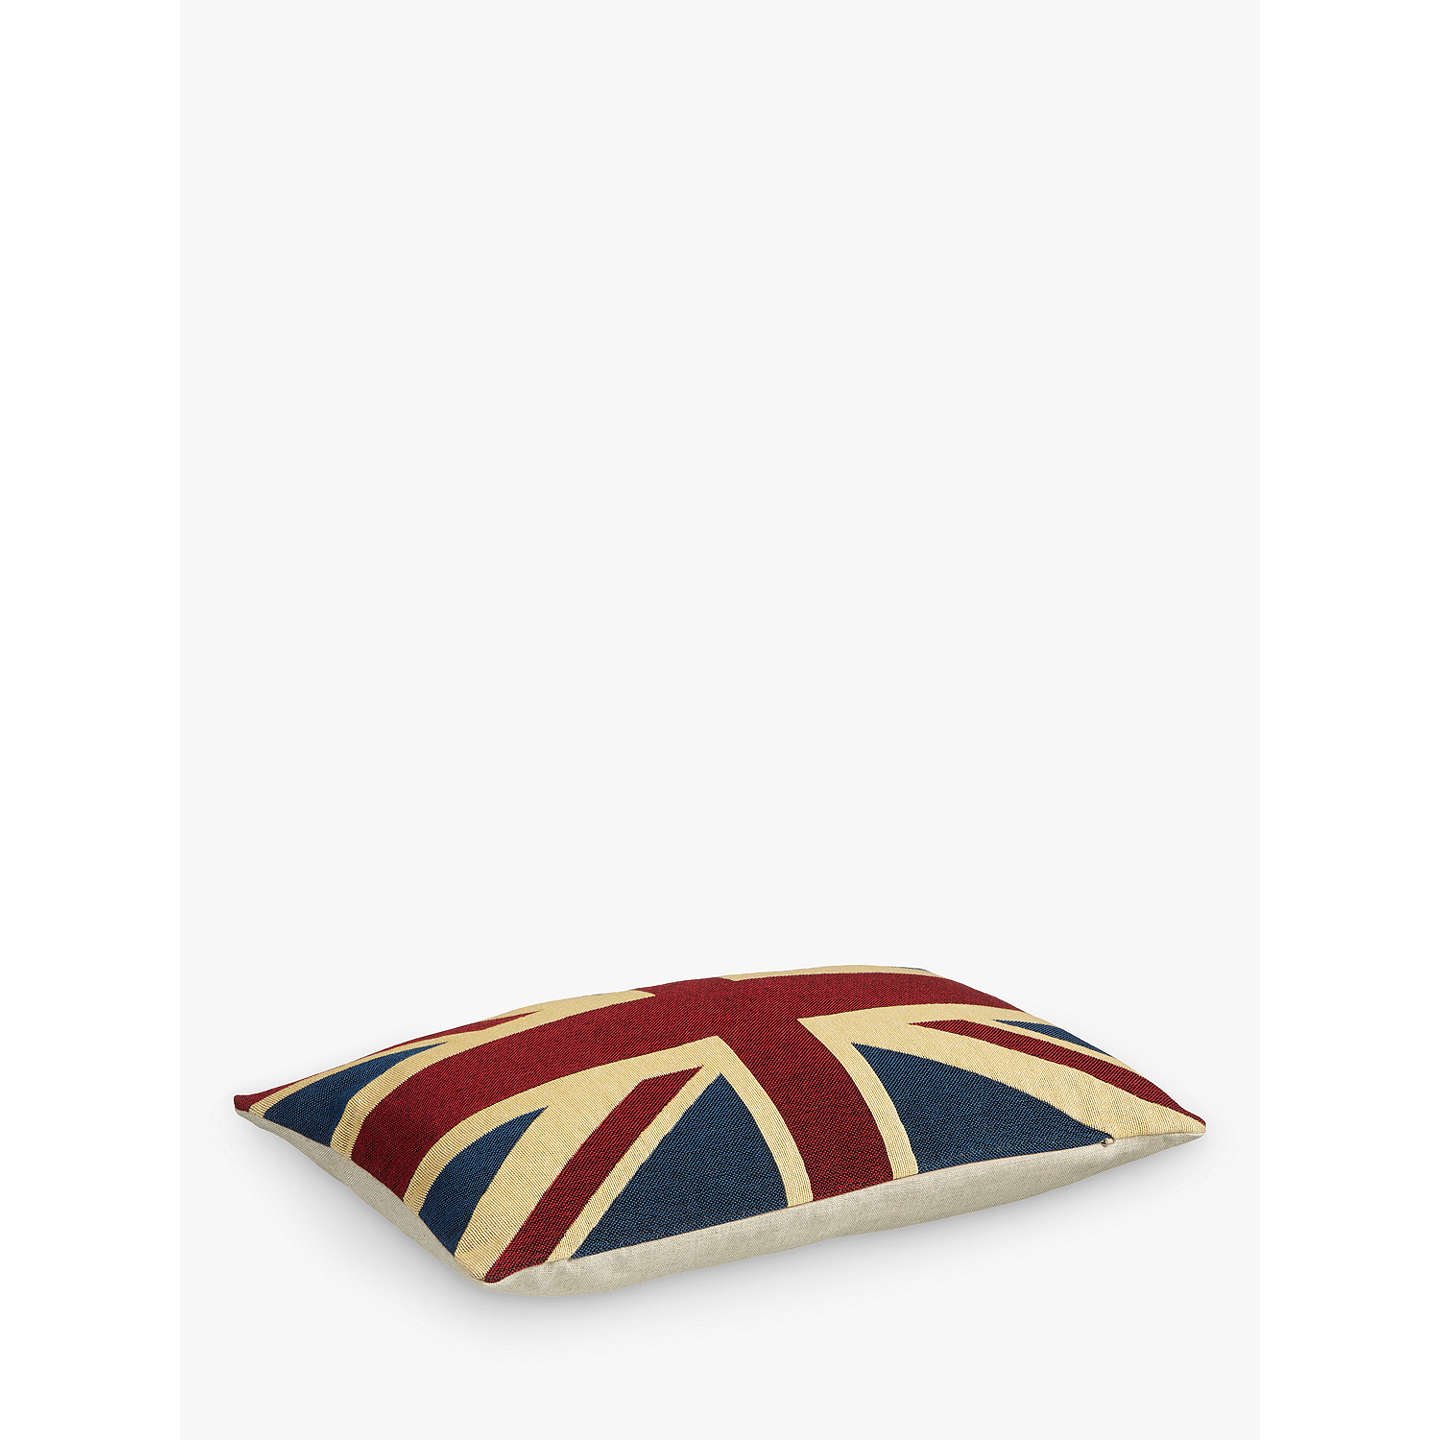 BuyJohn Lewis Victoria Cushion Online at johnlewis.com